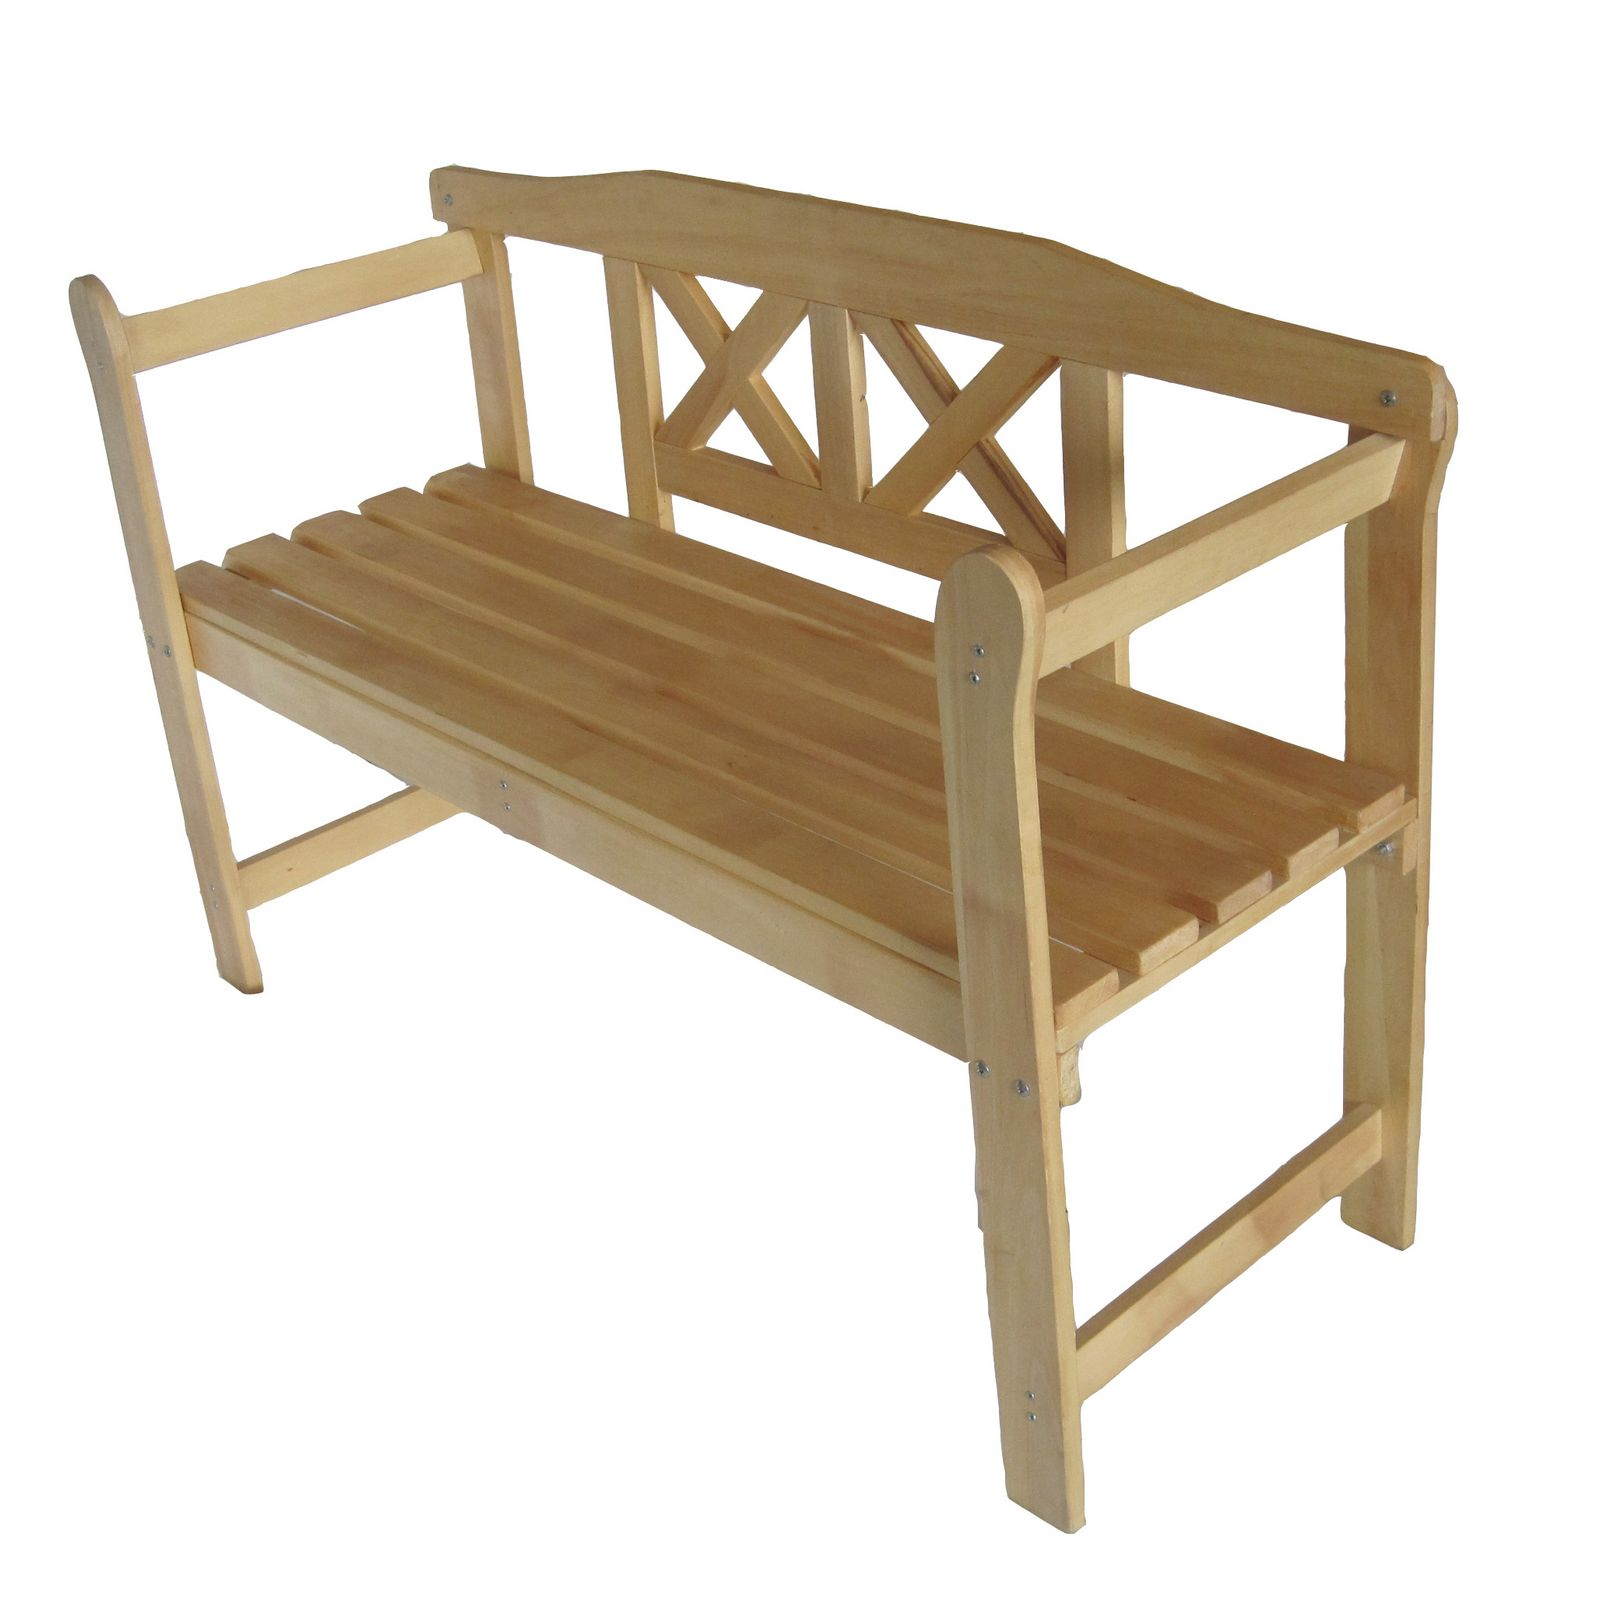 Outdoor wood chair furniture - Foxhunter 2 3 Seater Wooden Bench Chair Table Outdoor Furniture Garden Patio New